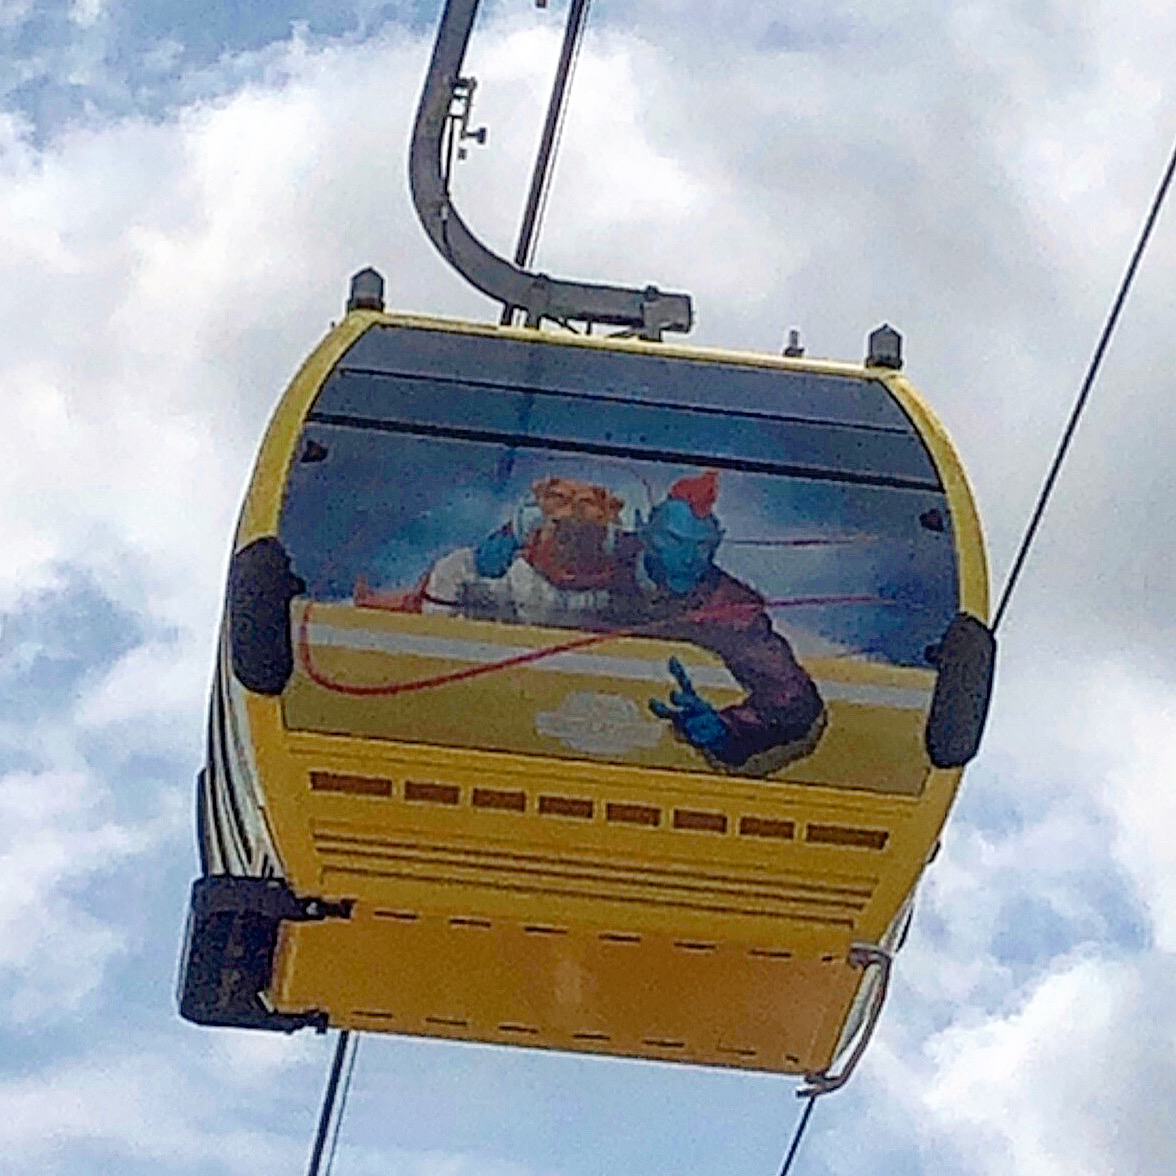 See the Disney Skyliner Gondolas Uncovered with Characters on them! 1